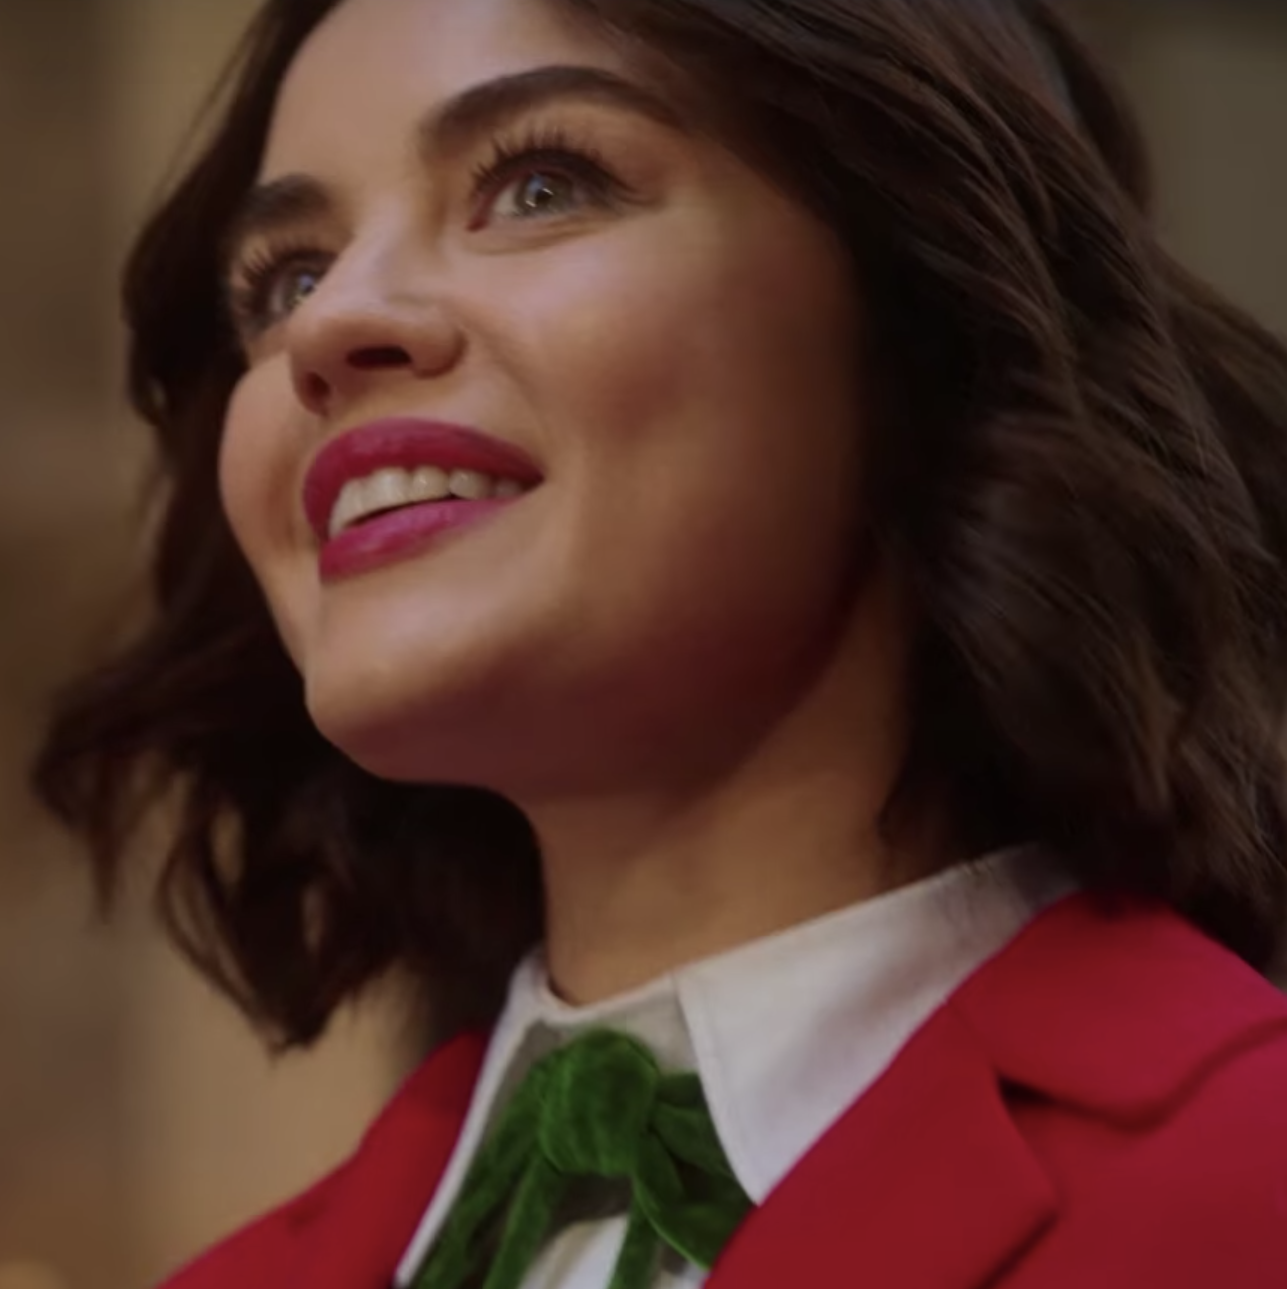 Riverdale spin-off Katy Keene unveils first-look teaser as Pretty Little Liars' Lucy Hale makes TV comeback